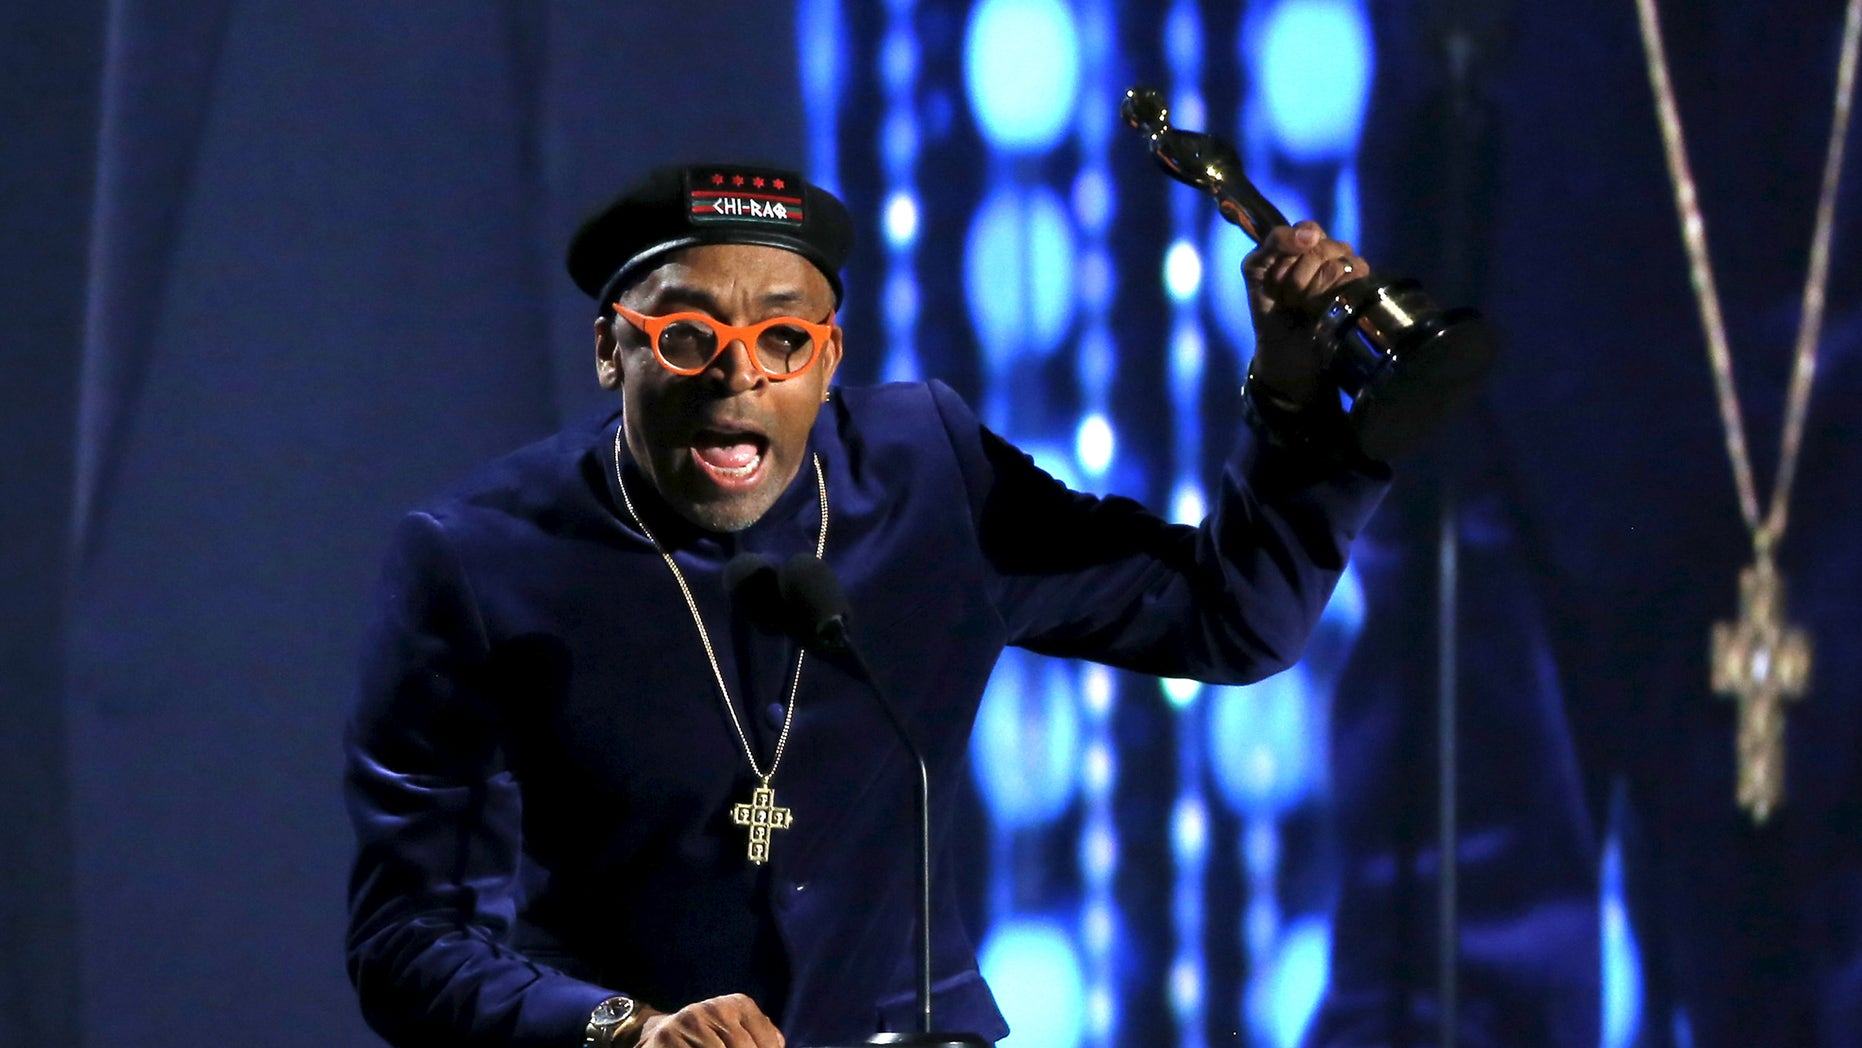 November 14, 2015. Director Spike Lee accepts an Honorary Award at the 7th Annual Academy of Motion Picture Arts and Sciences Governors Awards at The Ray Dolby Ballroom in Hollywood, California.